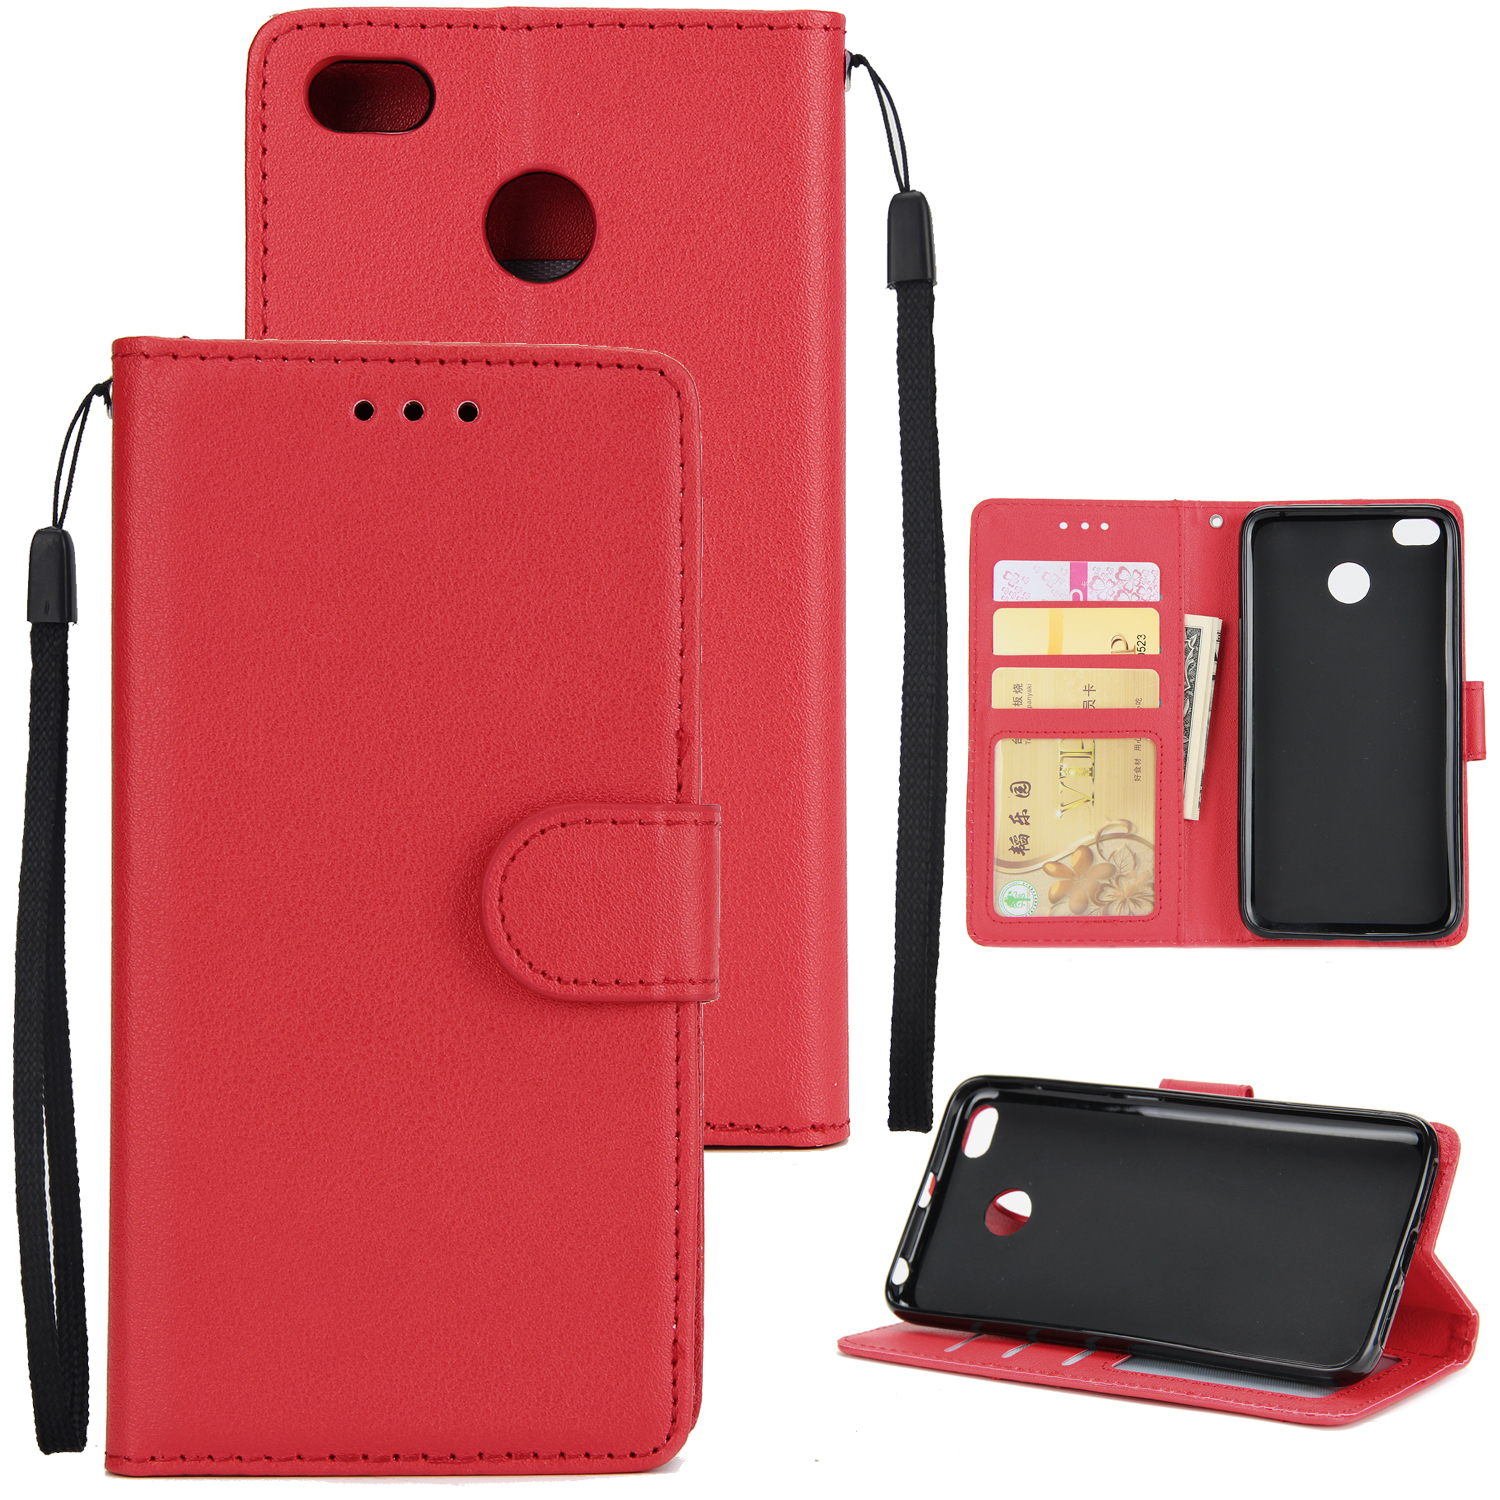 Ultra Slim Shockproof Full Protective Case with Card Wallet Slot for Xiaomi Redmi 4X red